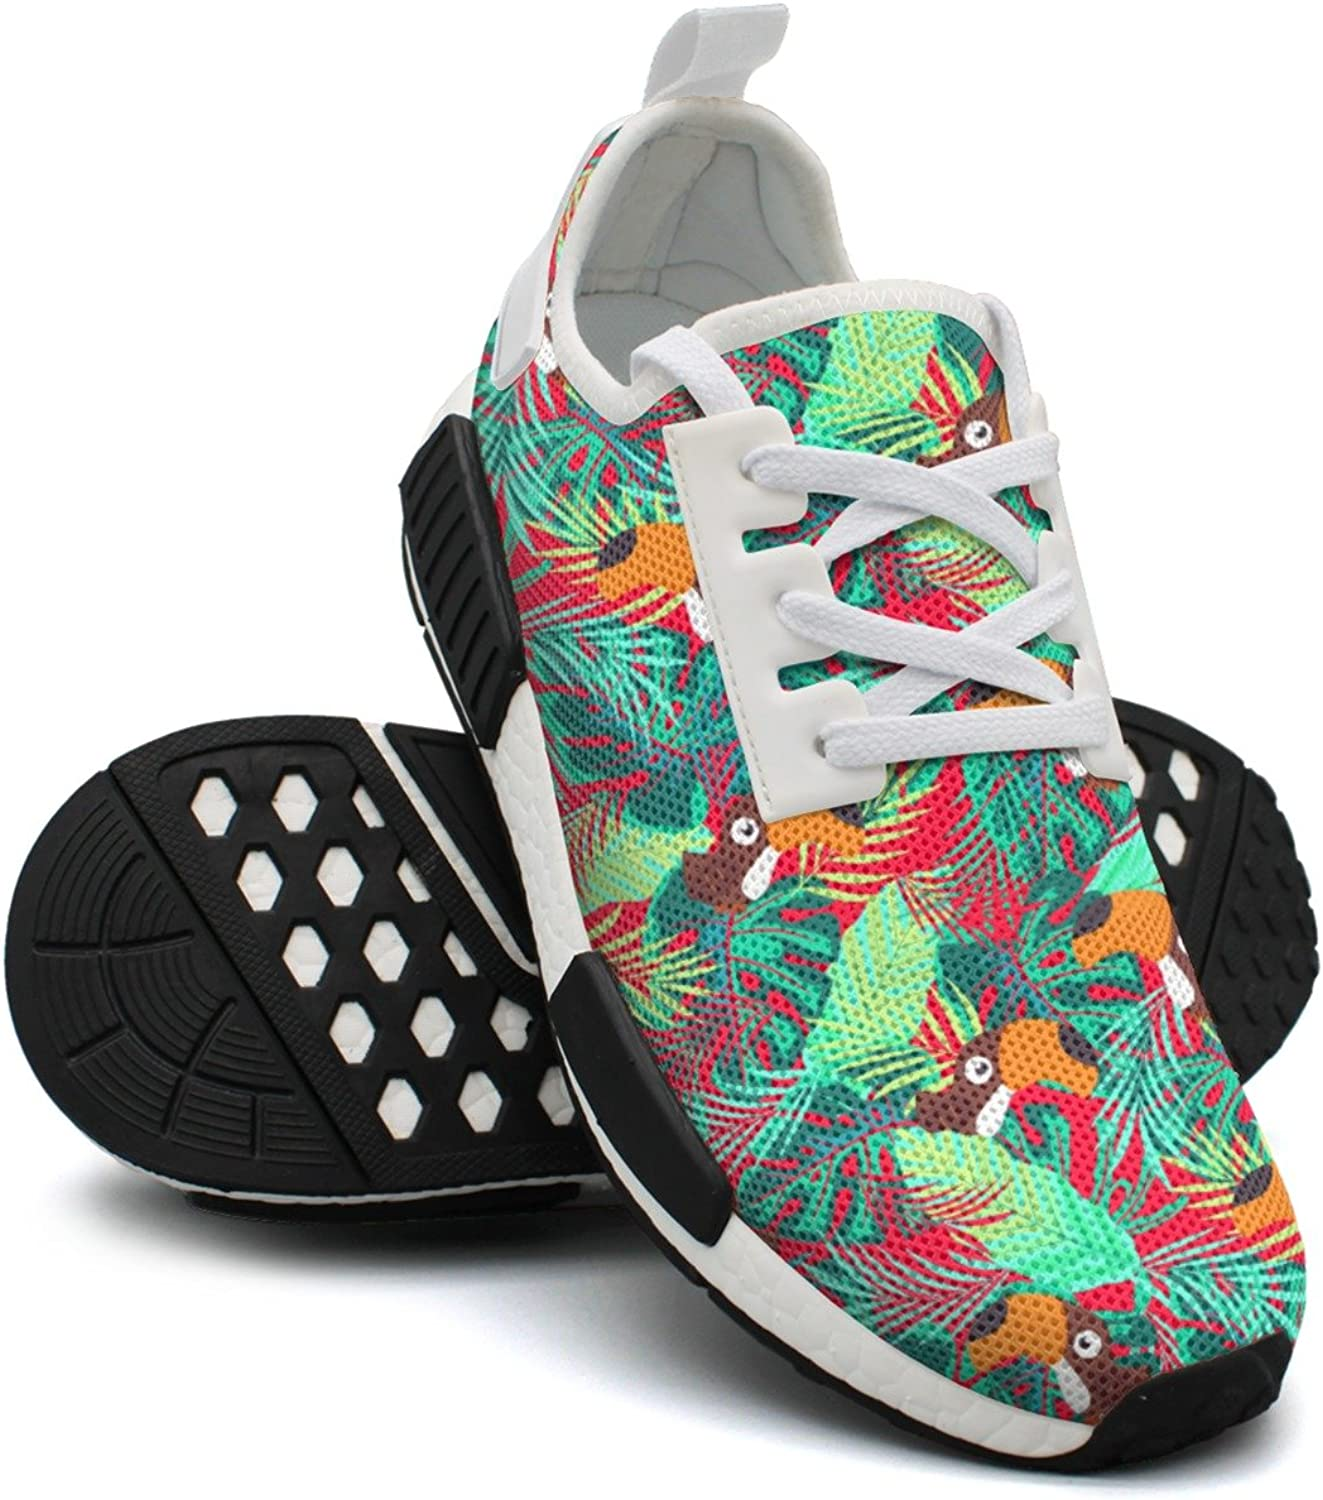 Ktyyuwwww Womens Ladies colorful New Abstract Toco Toucan Funny Design Running shoes